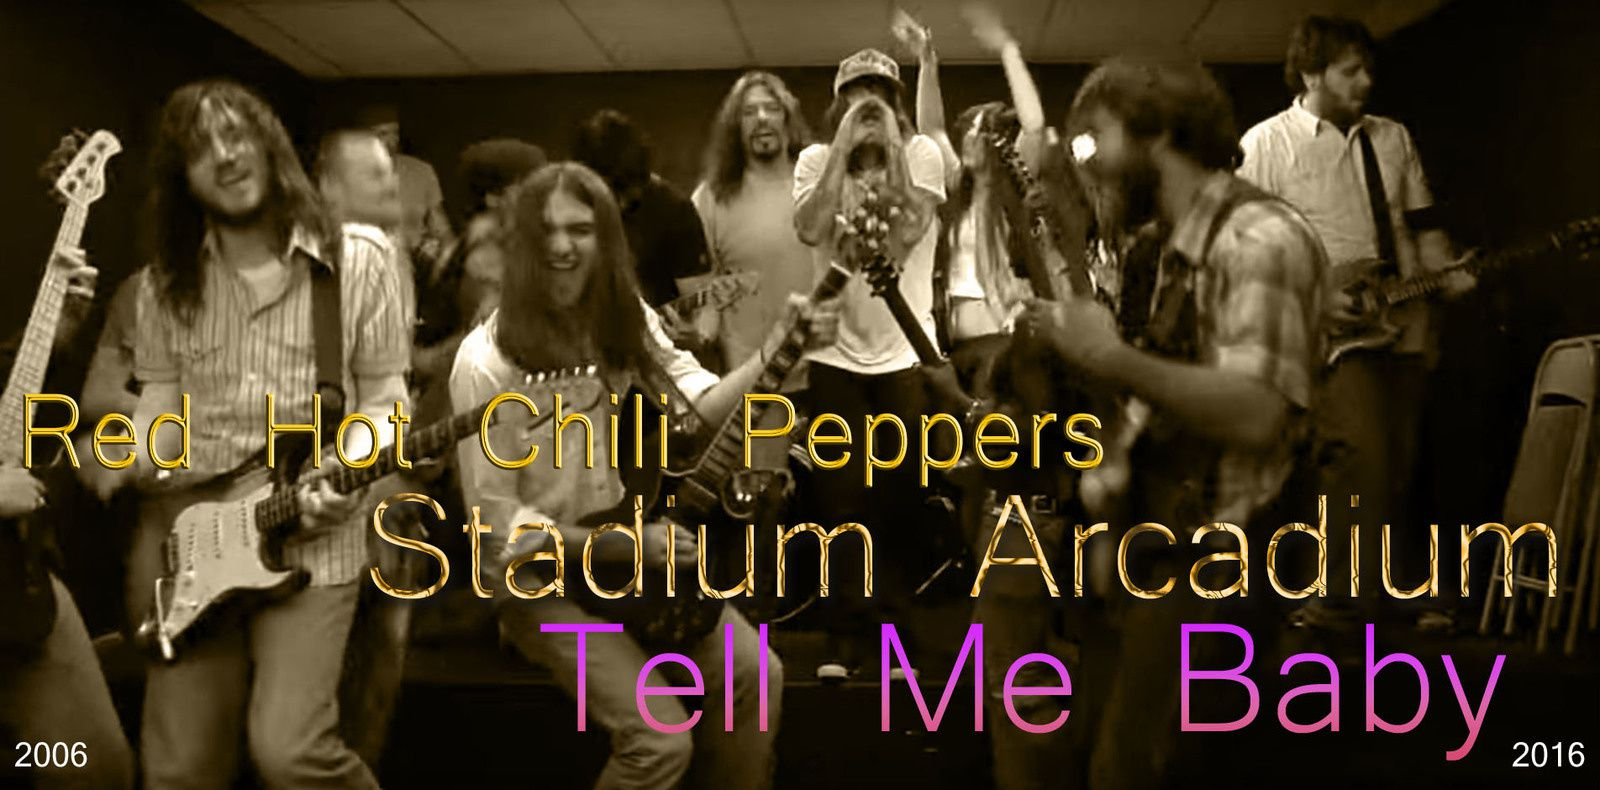 Red Hot Chili Peppers - Tell Me Baby